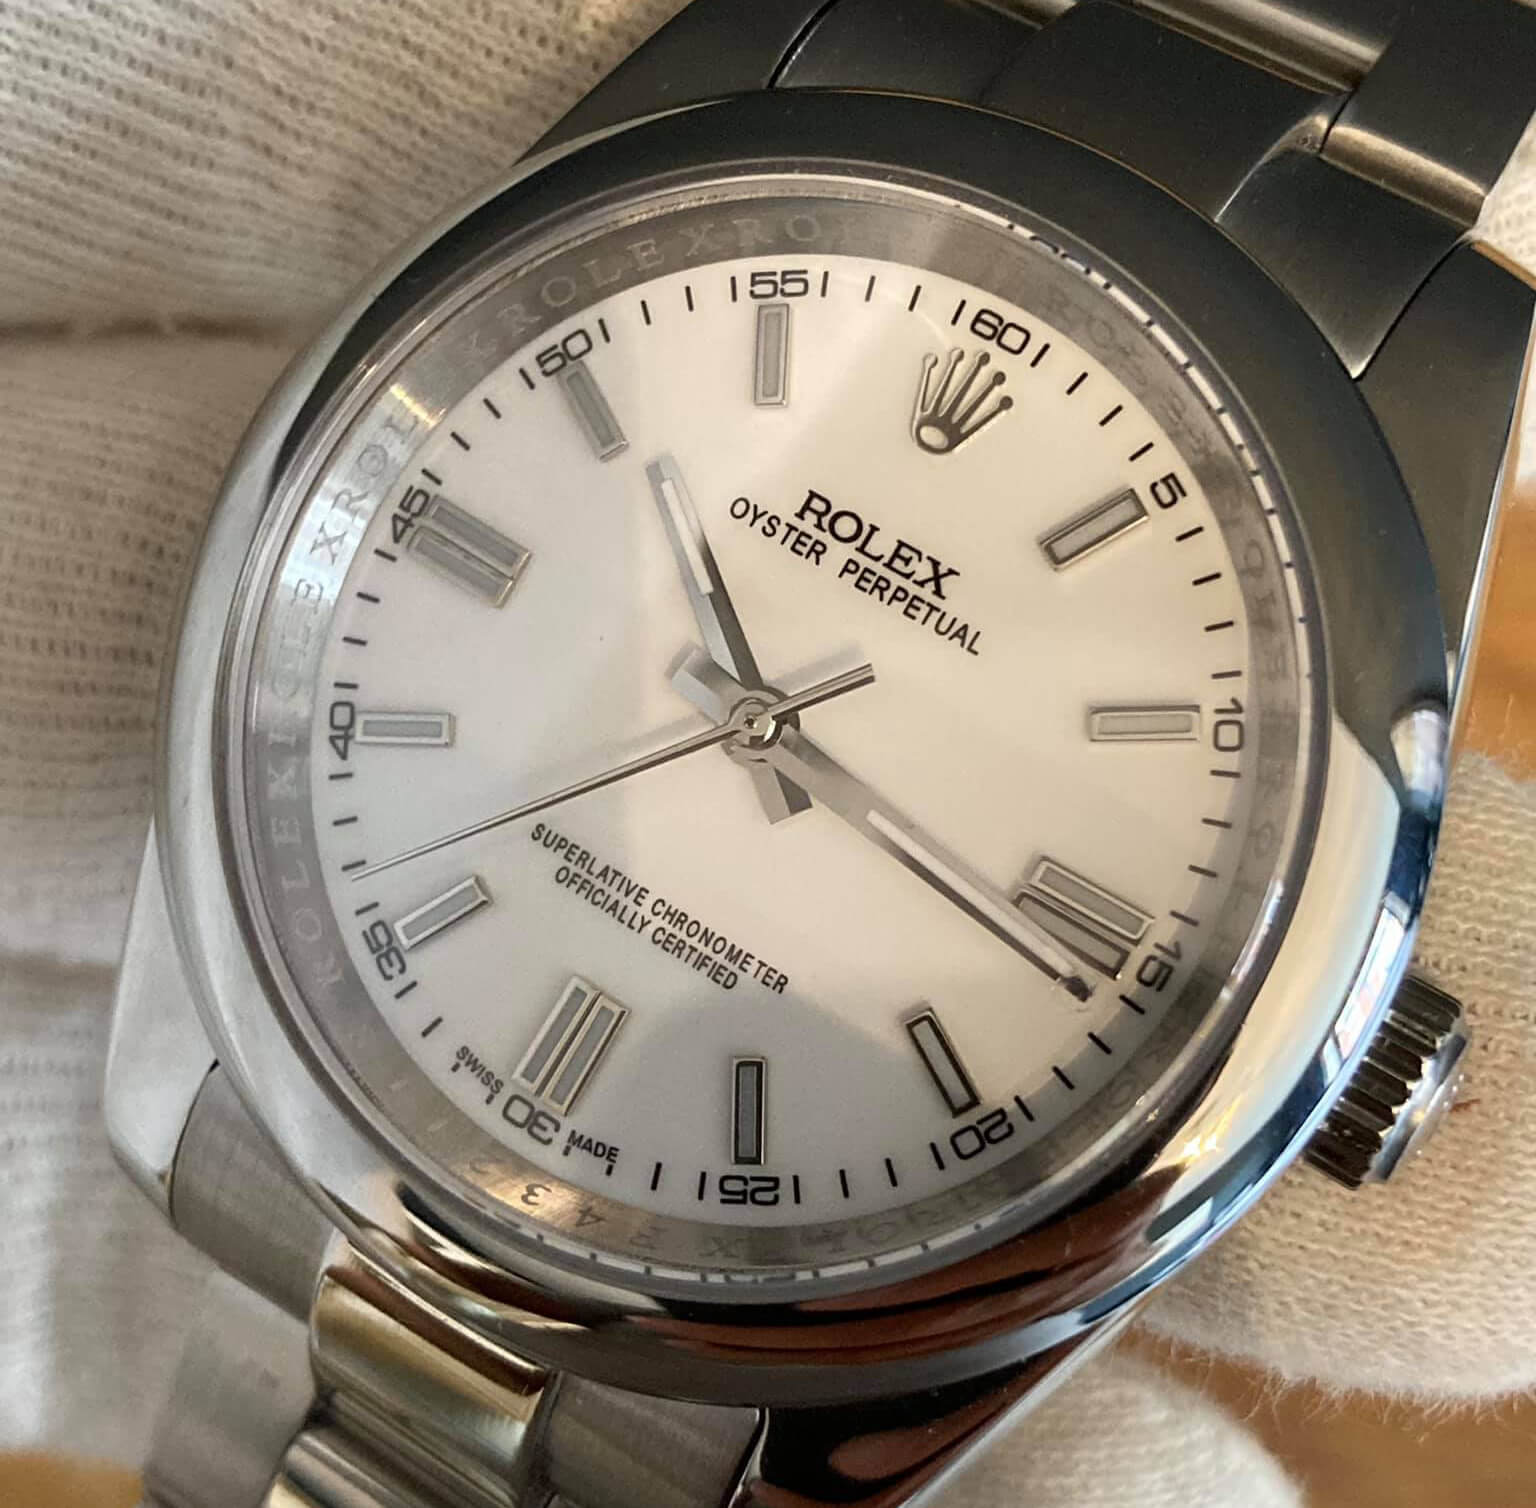 Rolex Oyster Perpetual Fake